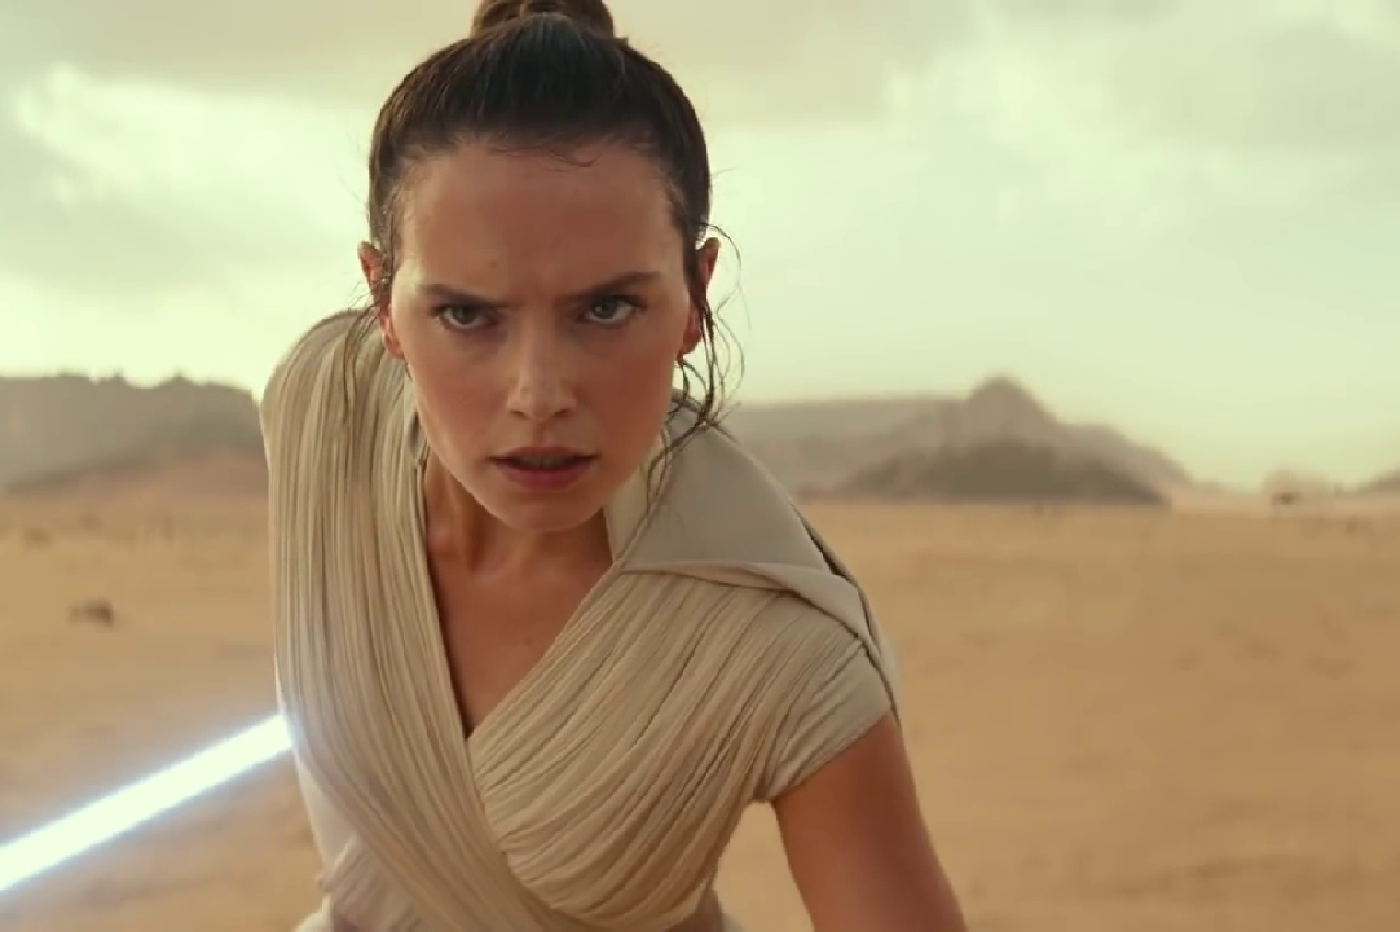 Star Wars épisode 9 The Rise of Skywalker teaser trailer bande-annonce analyse théories Palpatine Rey Darth Sidious